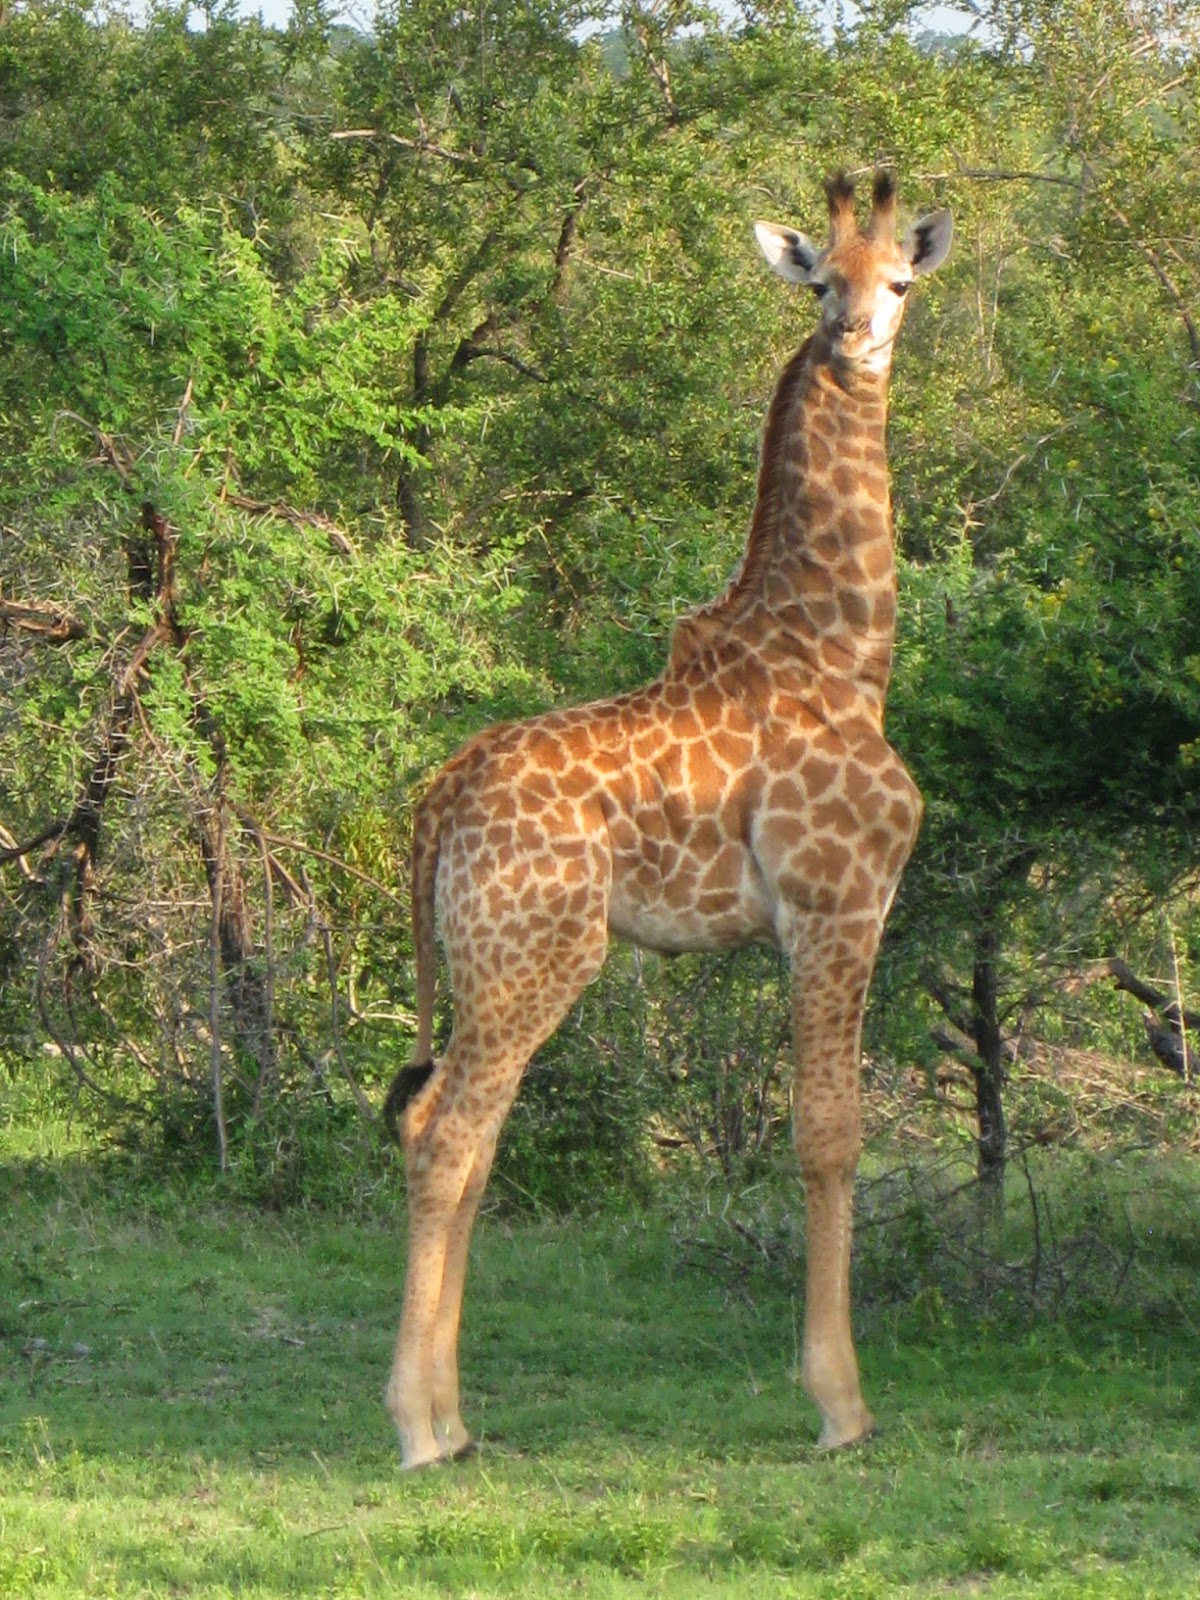 Sabi Sands - Afternoon game drive day 2: Baby giraffe spotted!